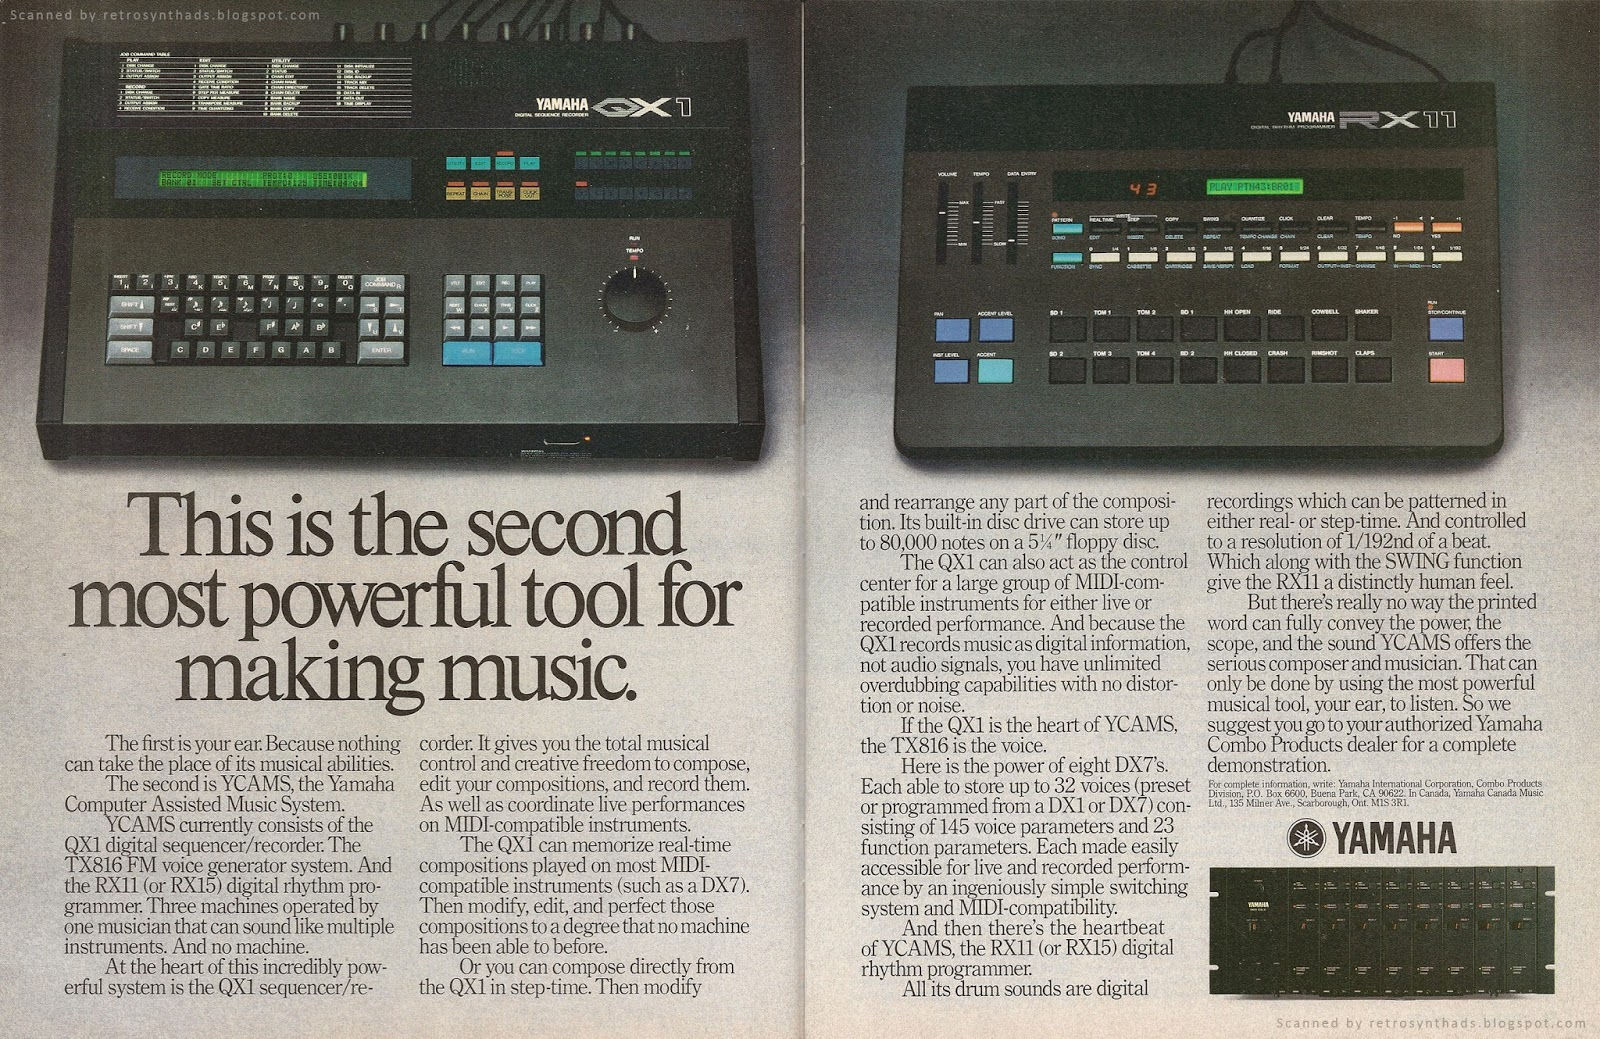 http://retrosynthads.blogspot.ca/2014/06/yamaha-computer-assisted-music-system.html